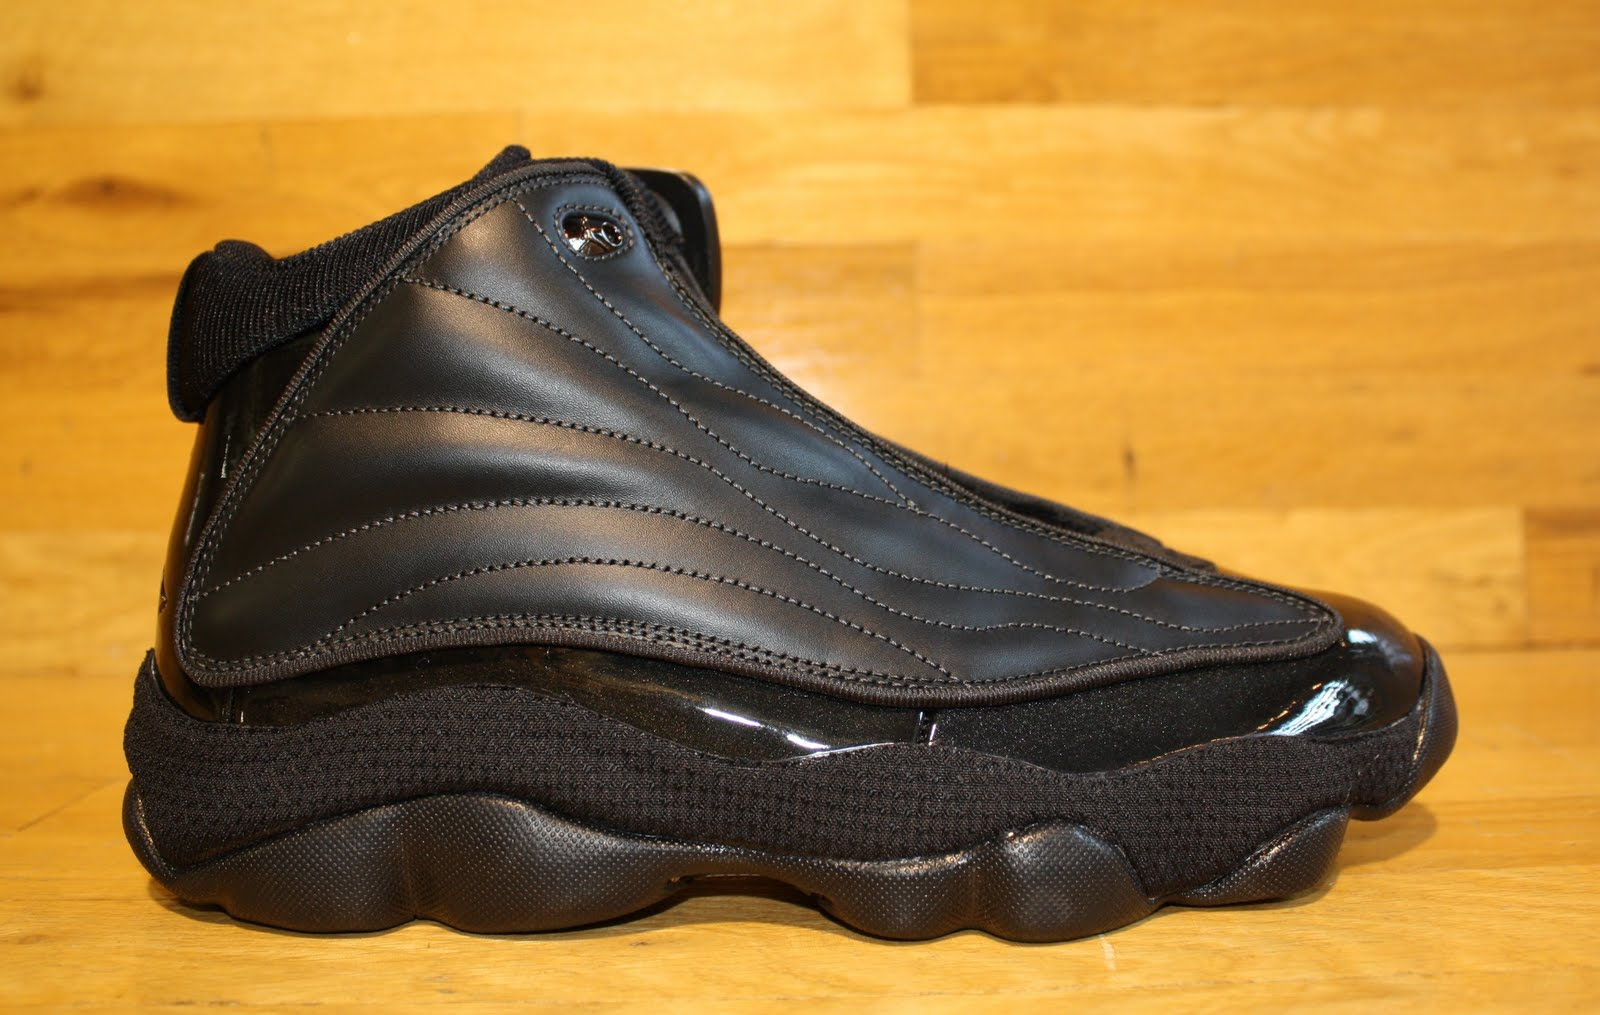 4bb51fdb4d7118 ... italy new air jordan jumpman pro strong black available in dr jays  stores d0726 6c7c6